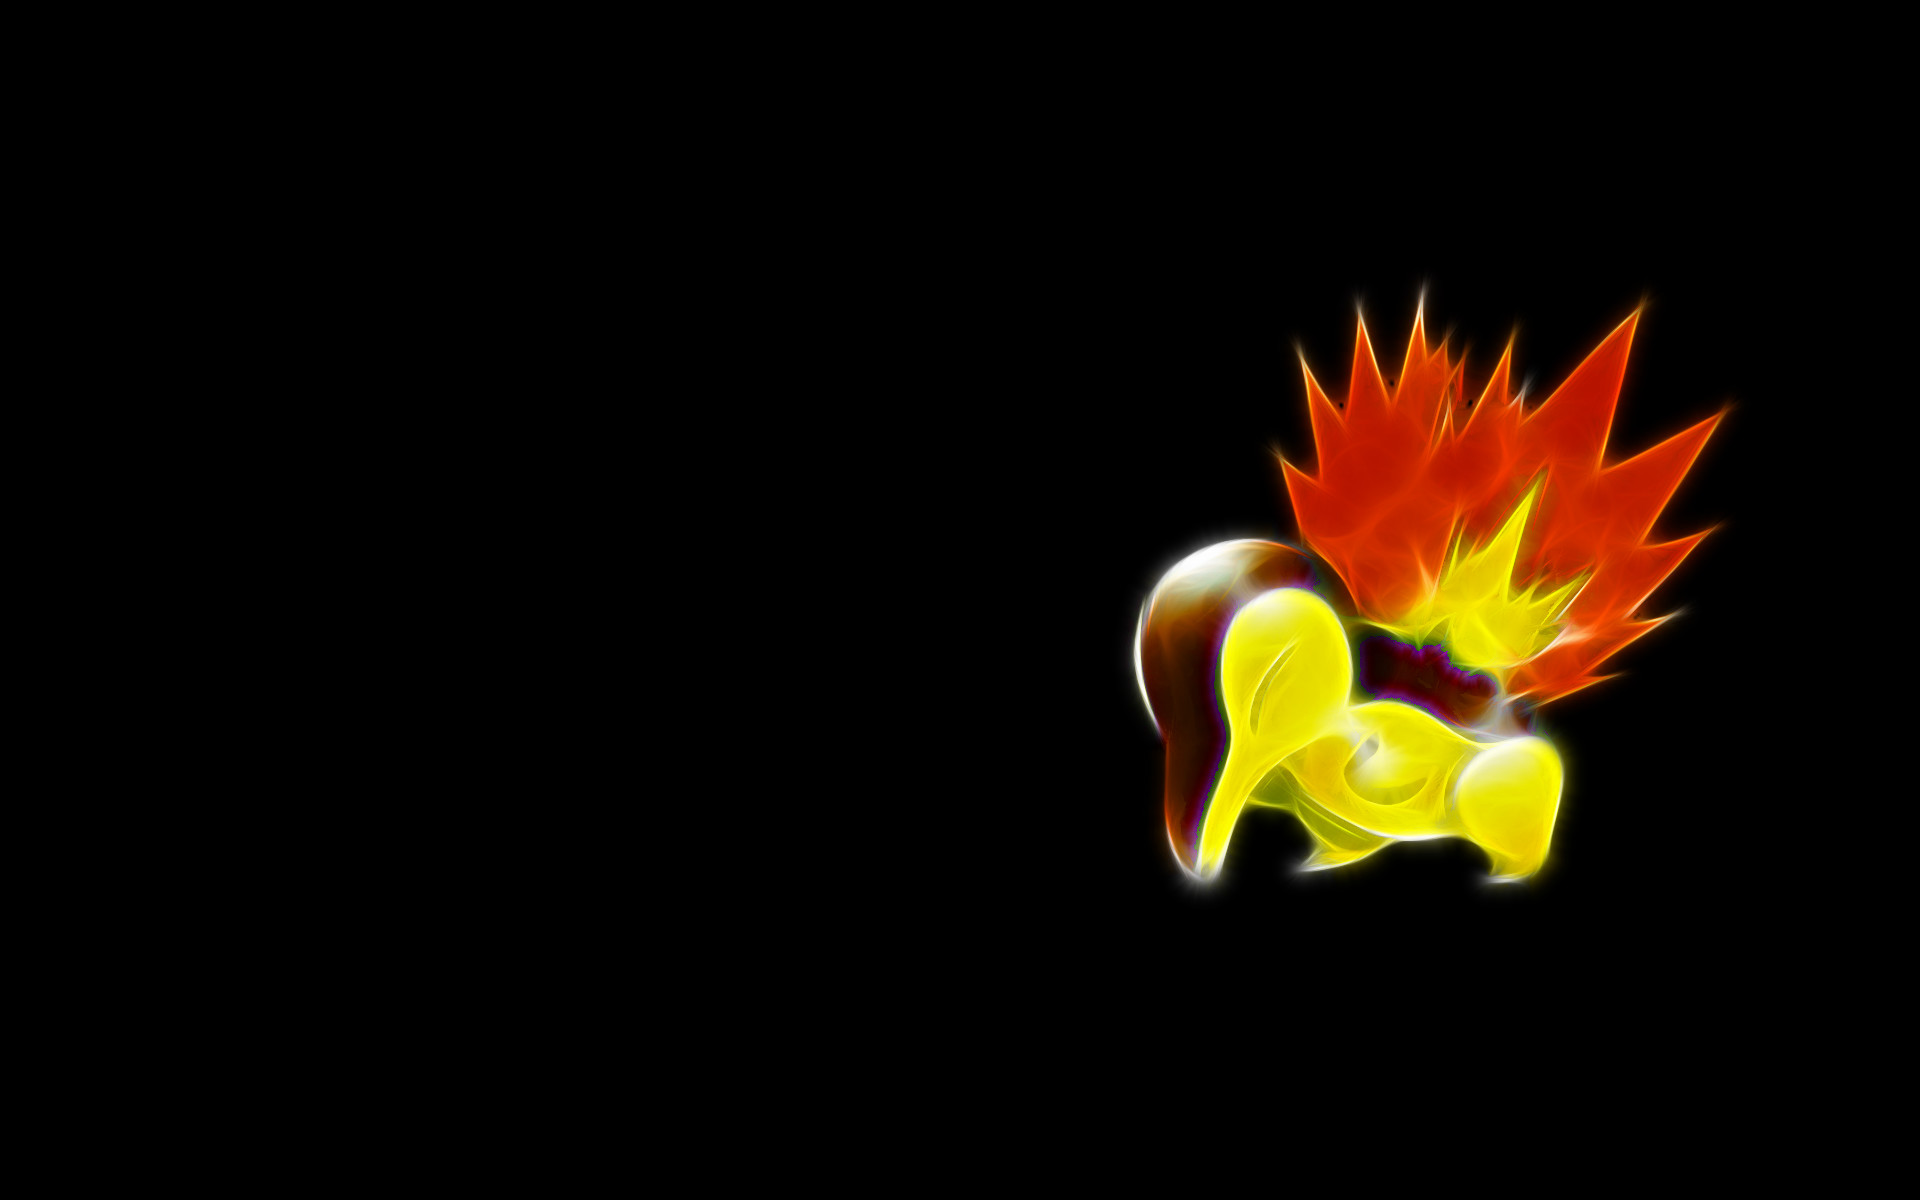 1920x1200 ... Cyndaquil Pokemon HD Wallpapers - Free HD wallpapers, Iphone .